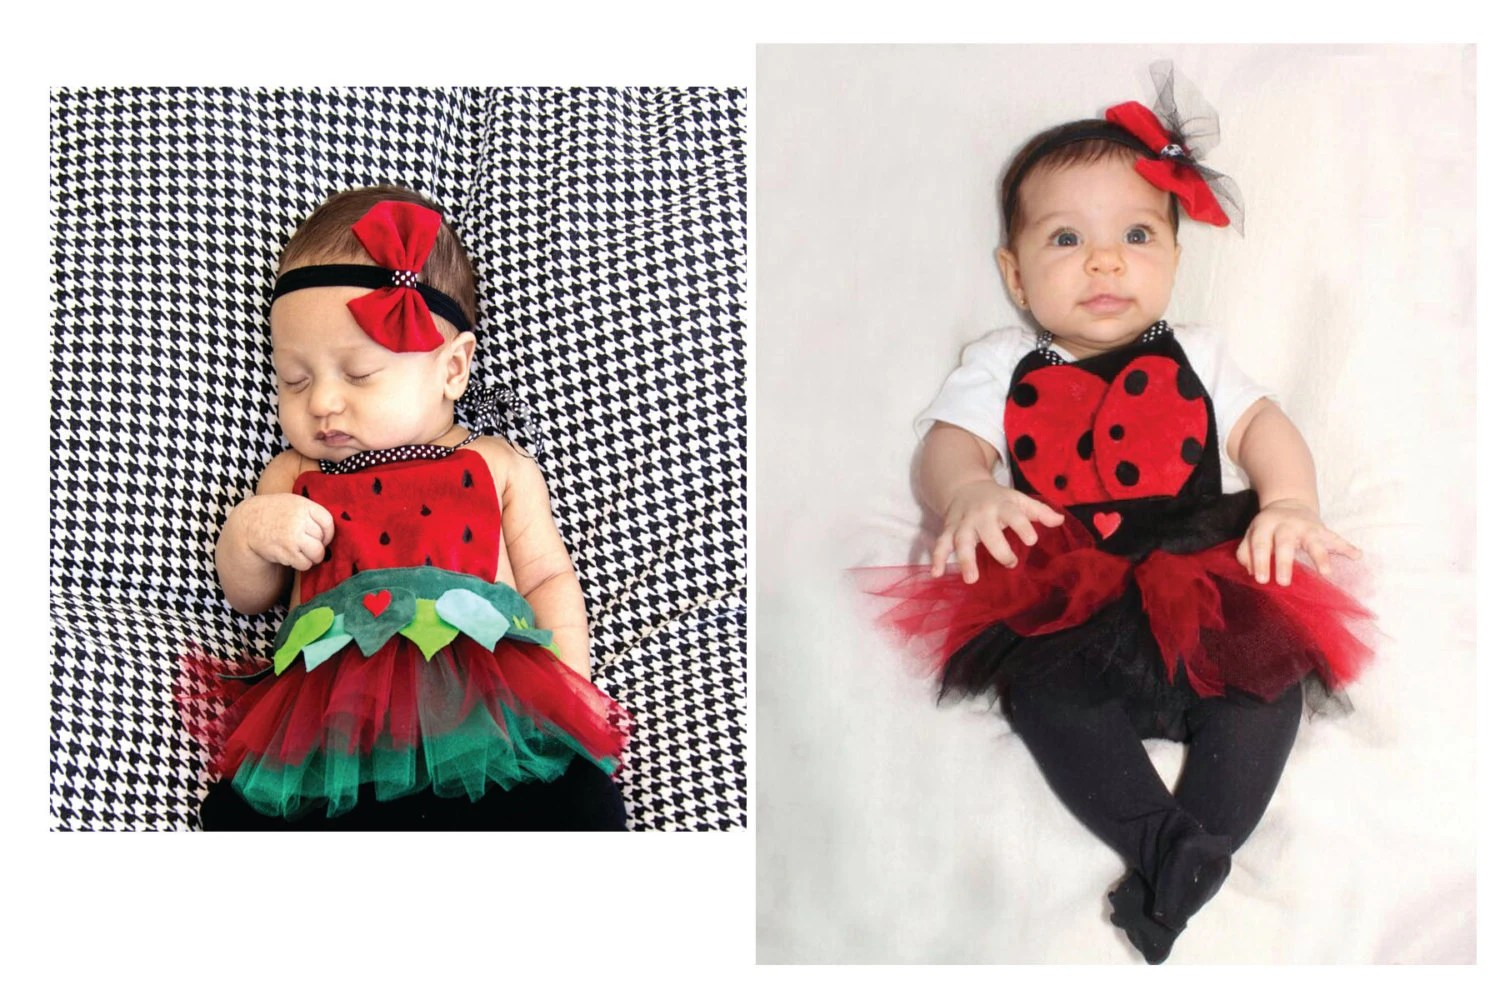 Halloween Costumes For 3 Month Baby Girl Cartoonview Co  sc 1 st  Cartoonview.co & Halloween Costumes For 3 Month Baby Girl | Cartoonview.co